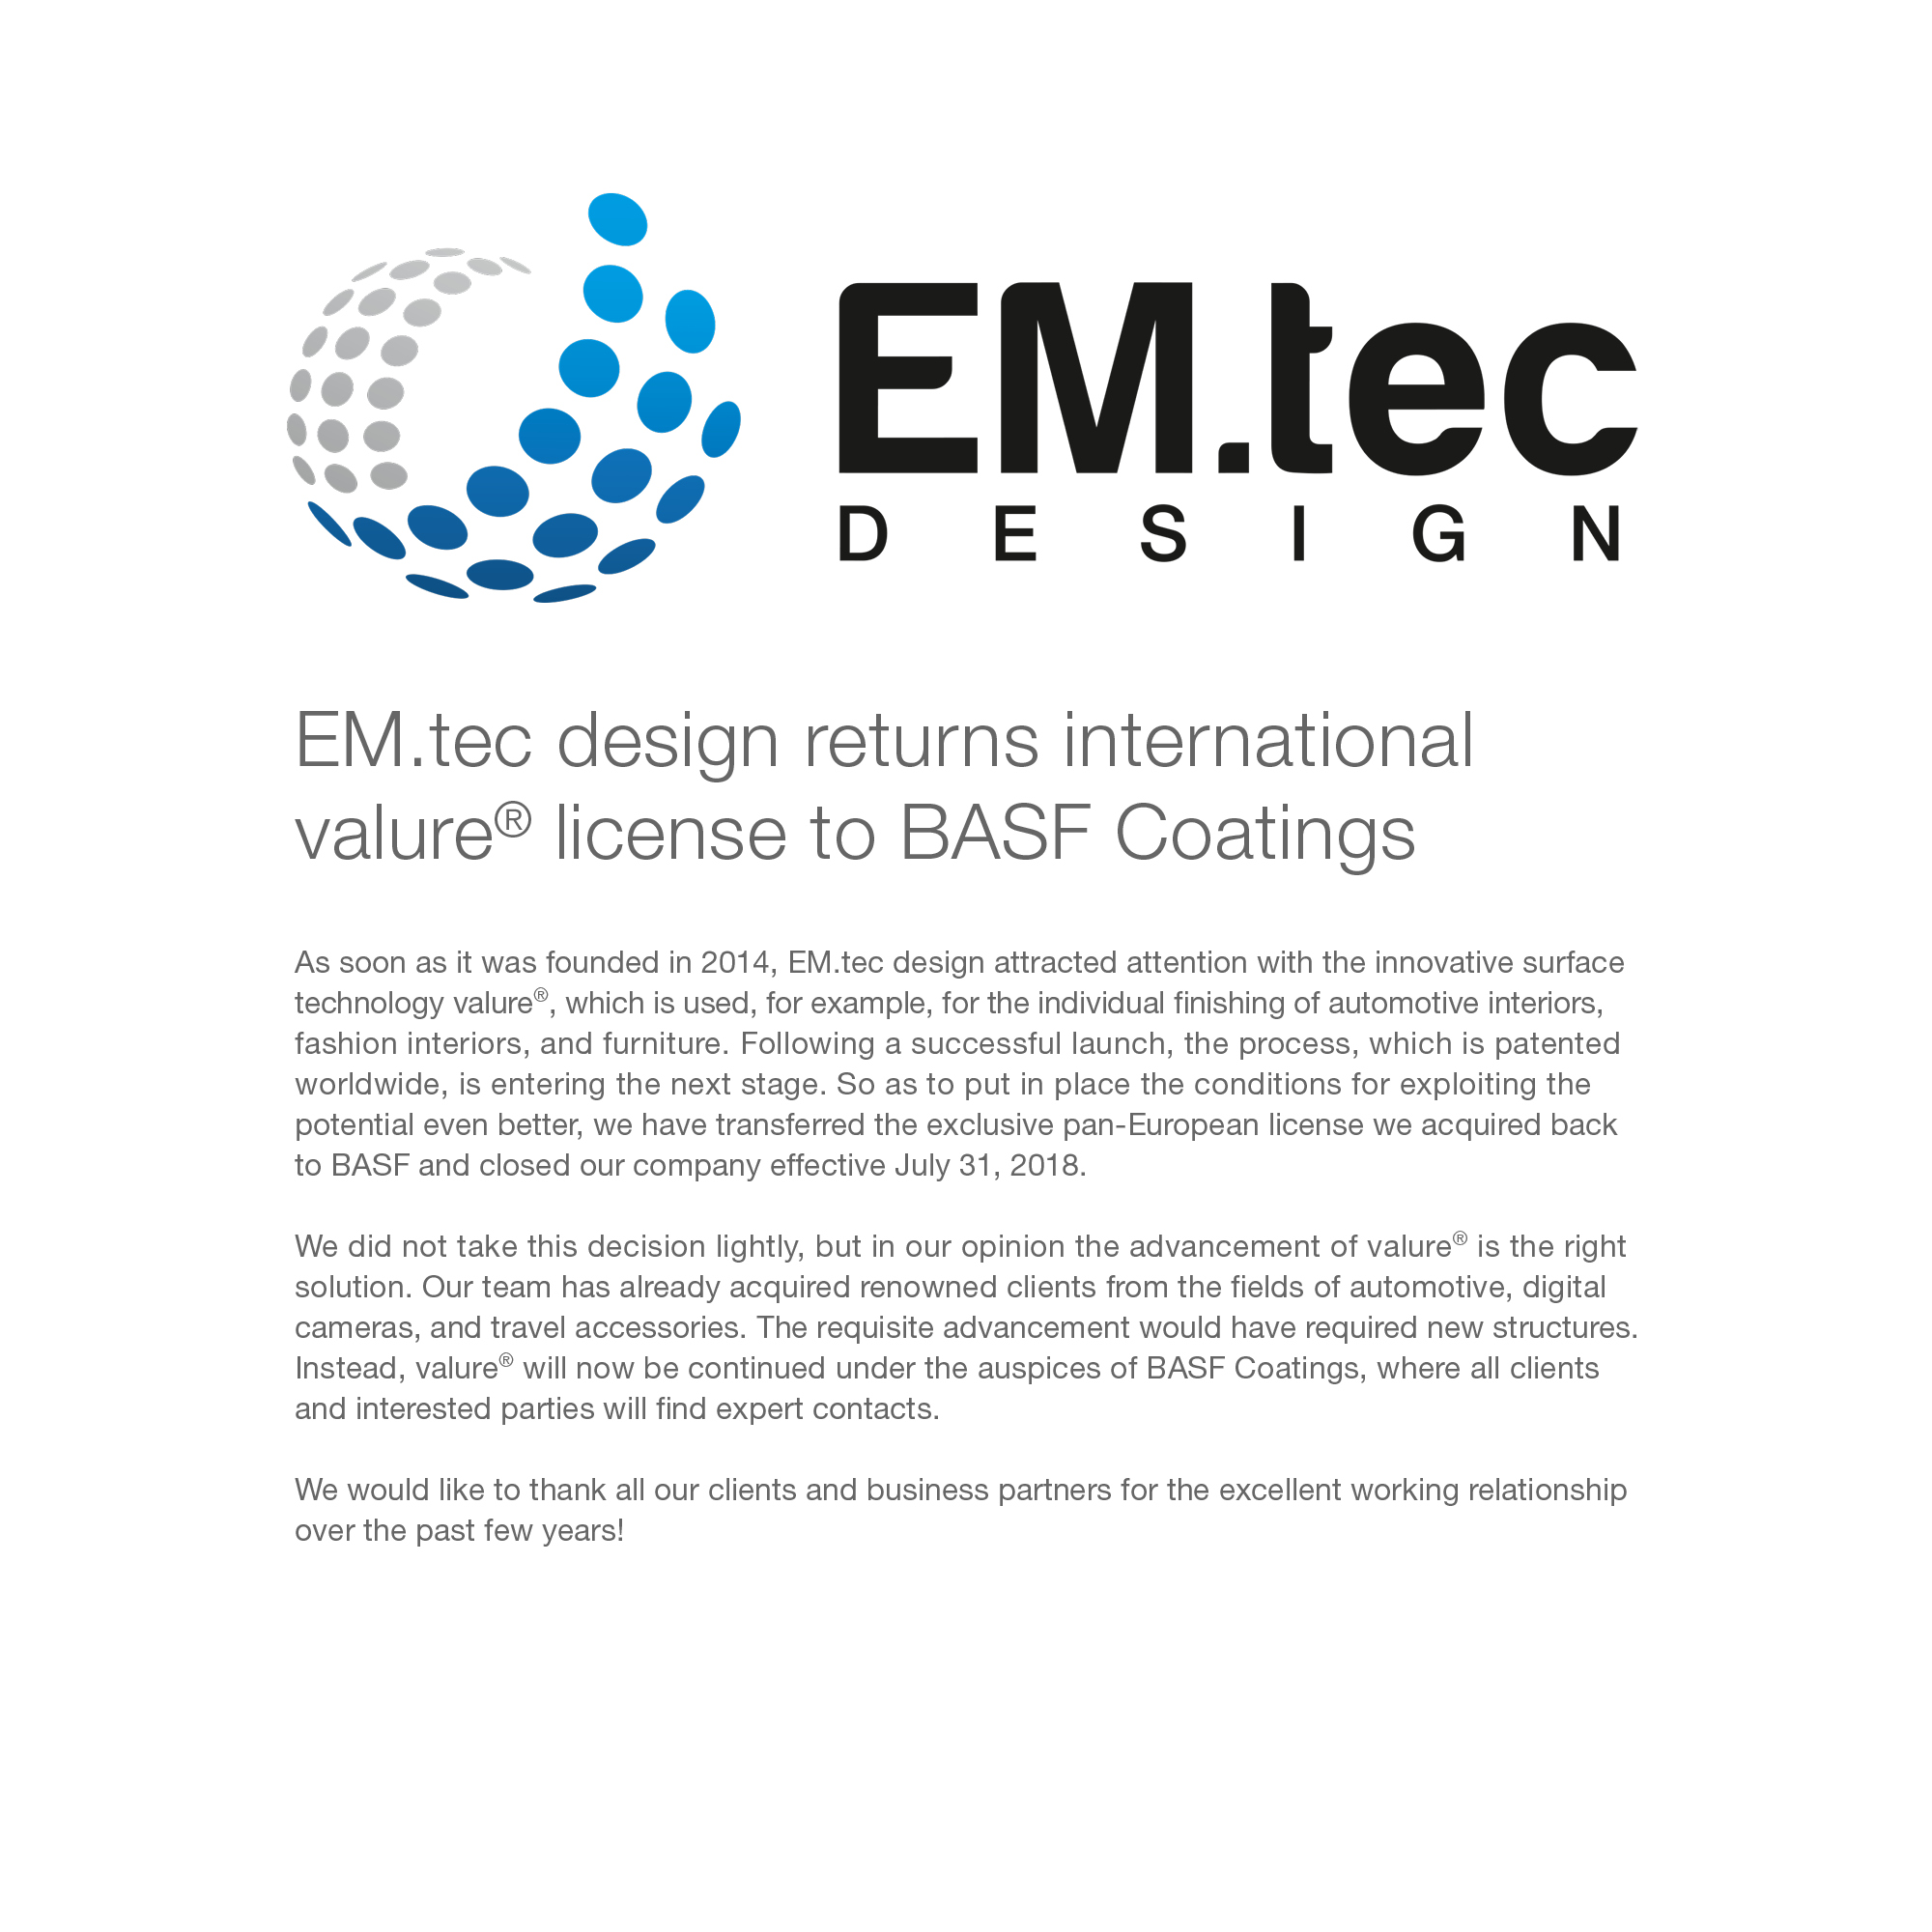 EM.tec design returns international valure® licence to BASF Coatings.